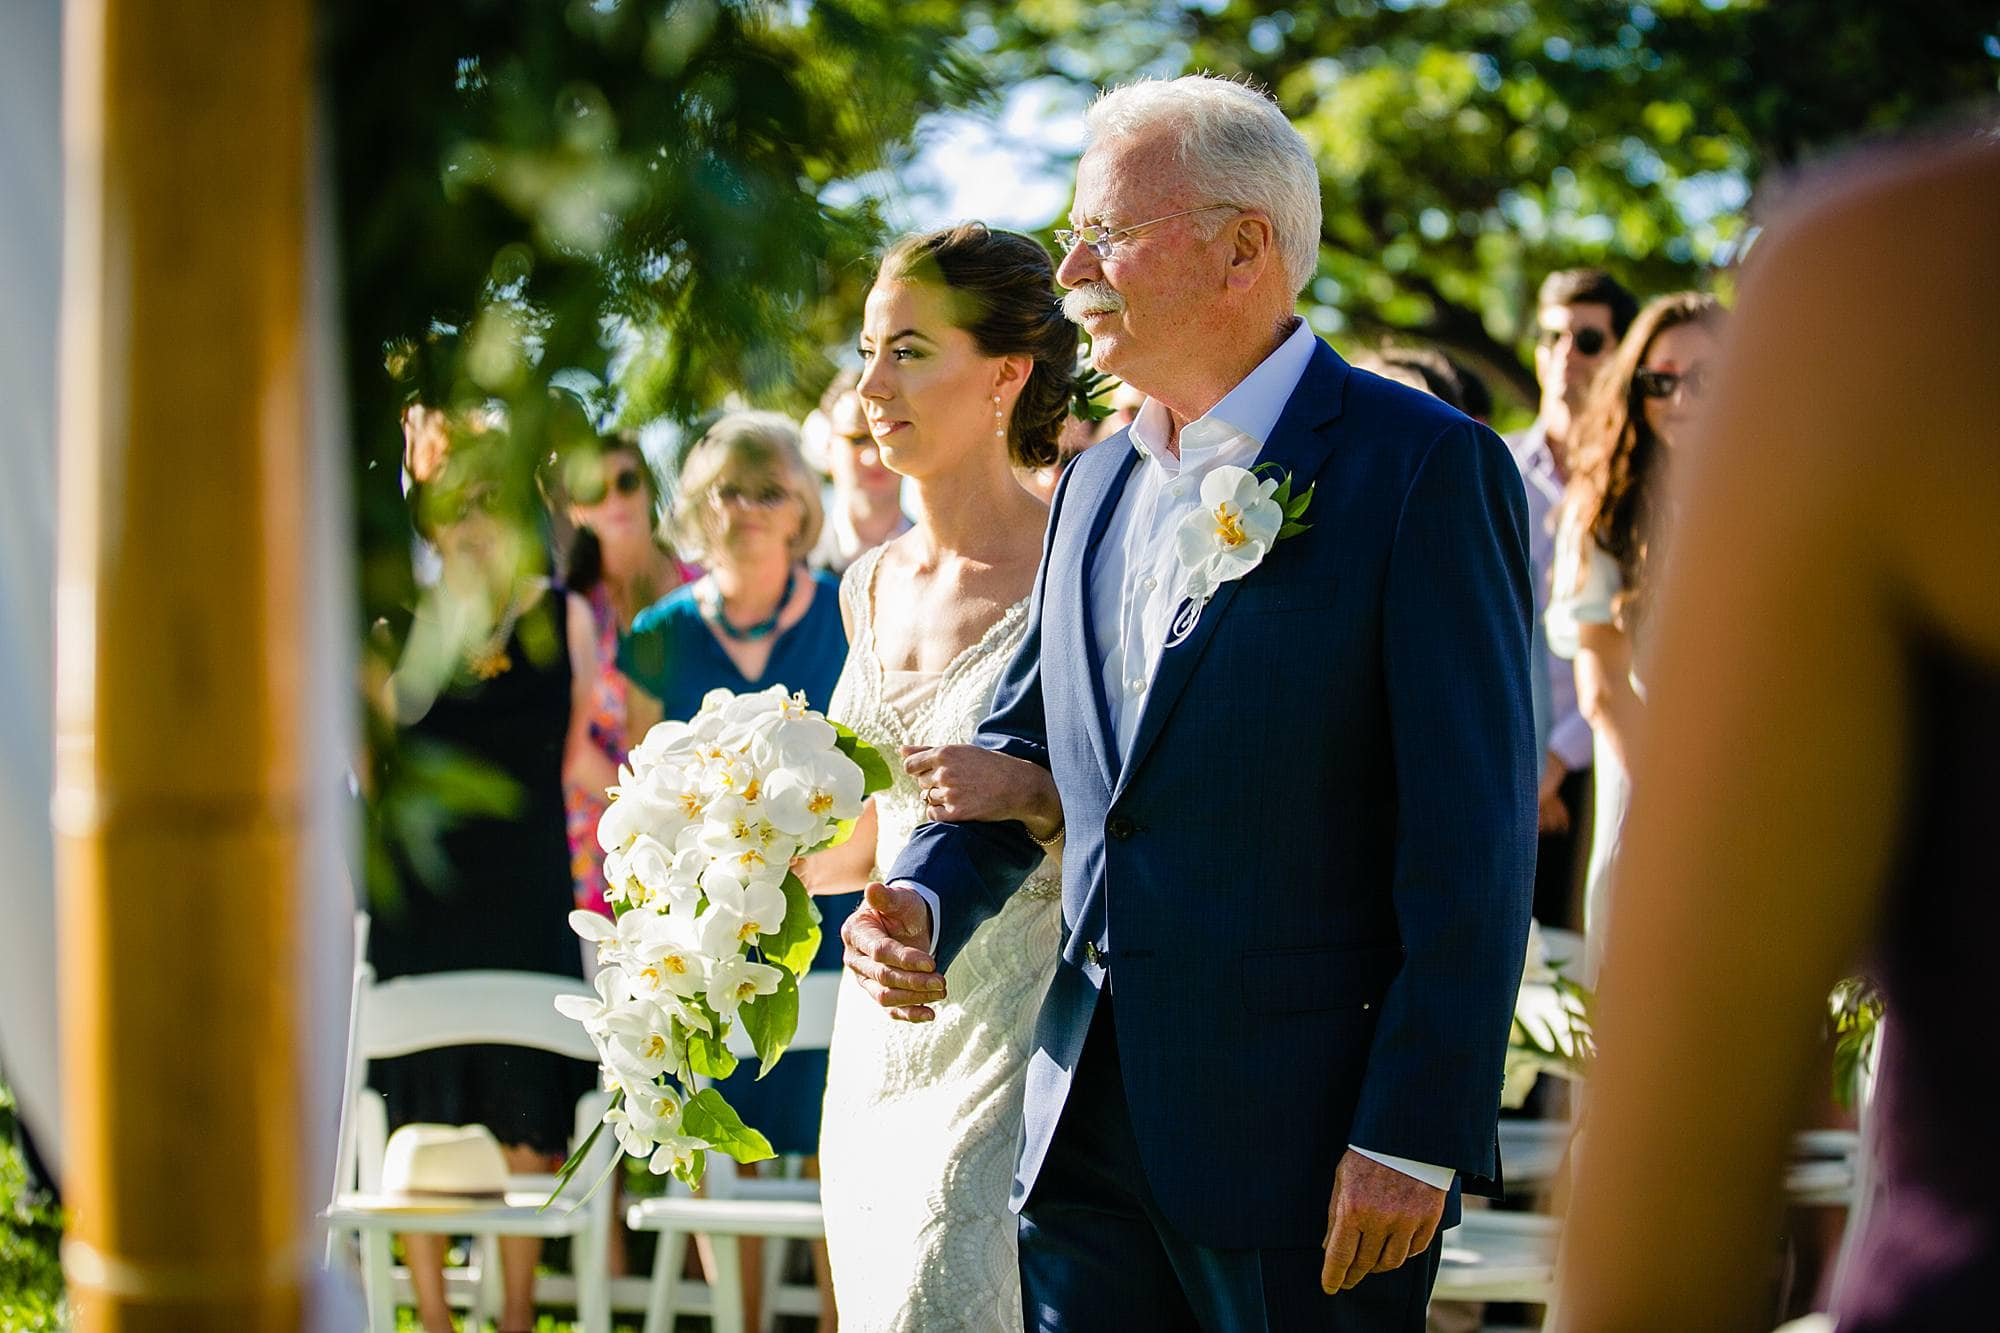 father giving away daughter at wedding